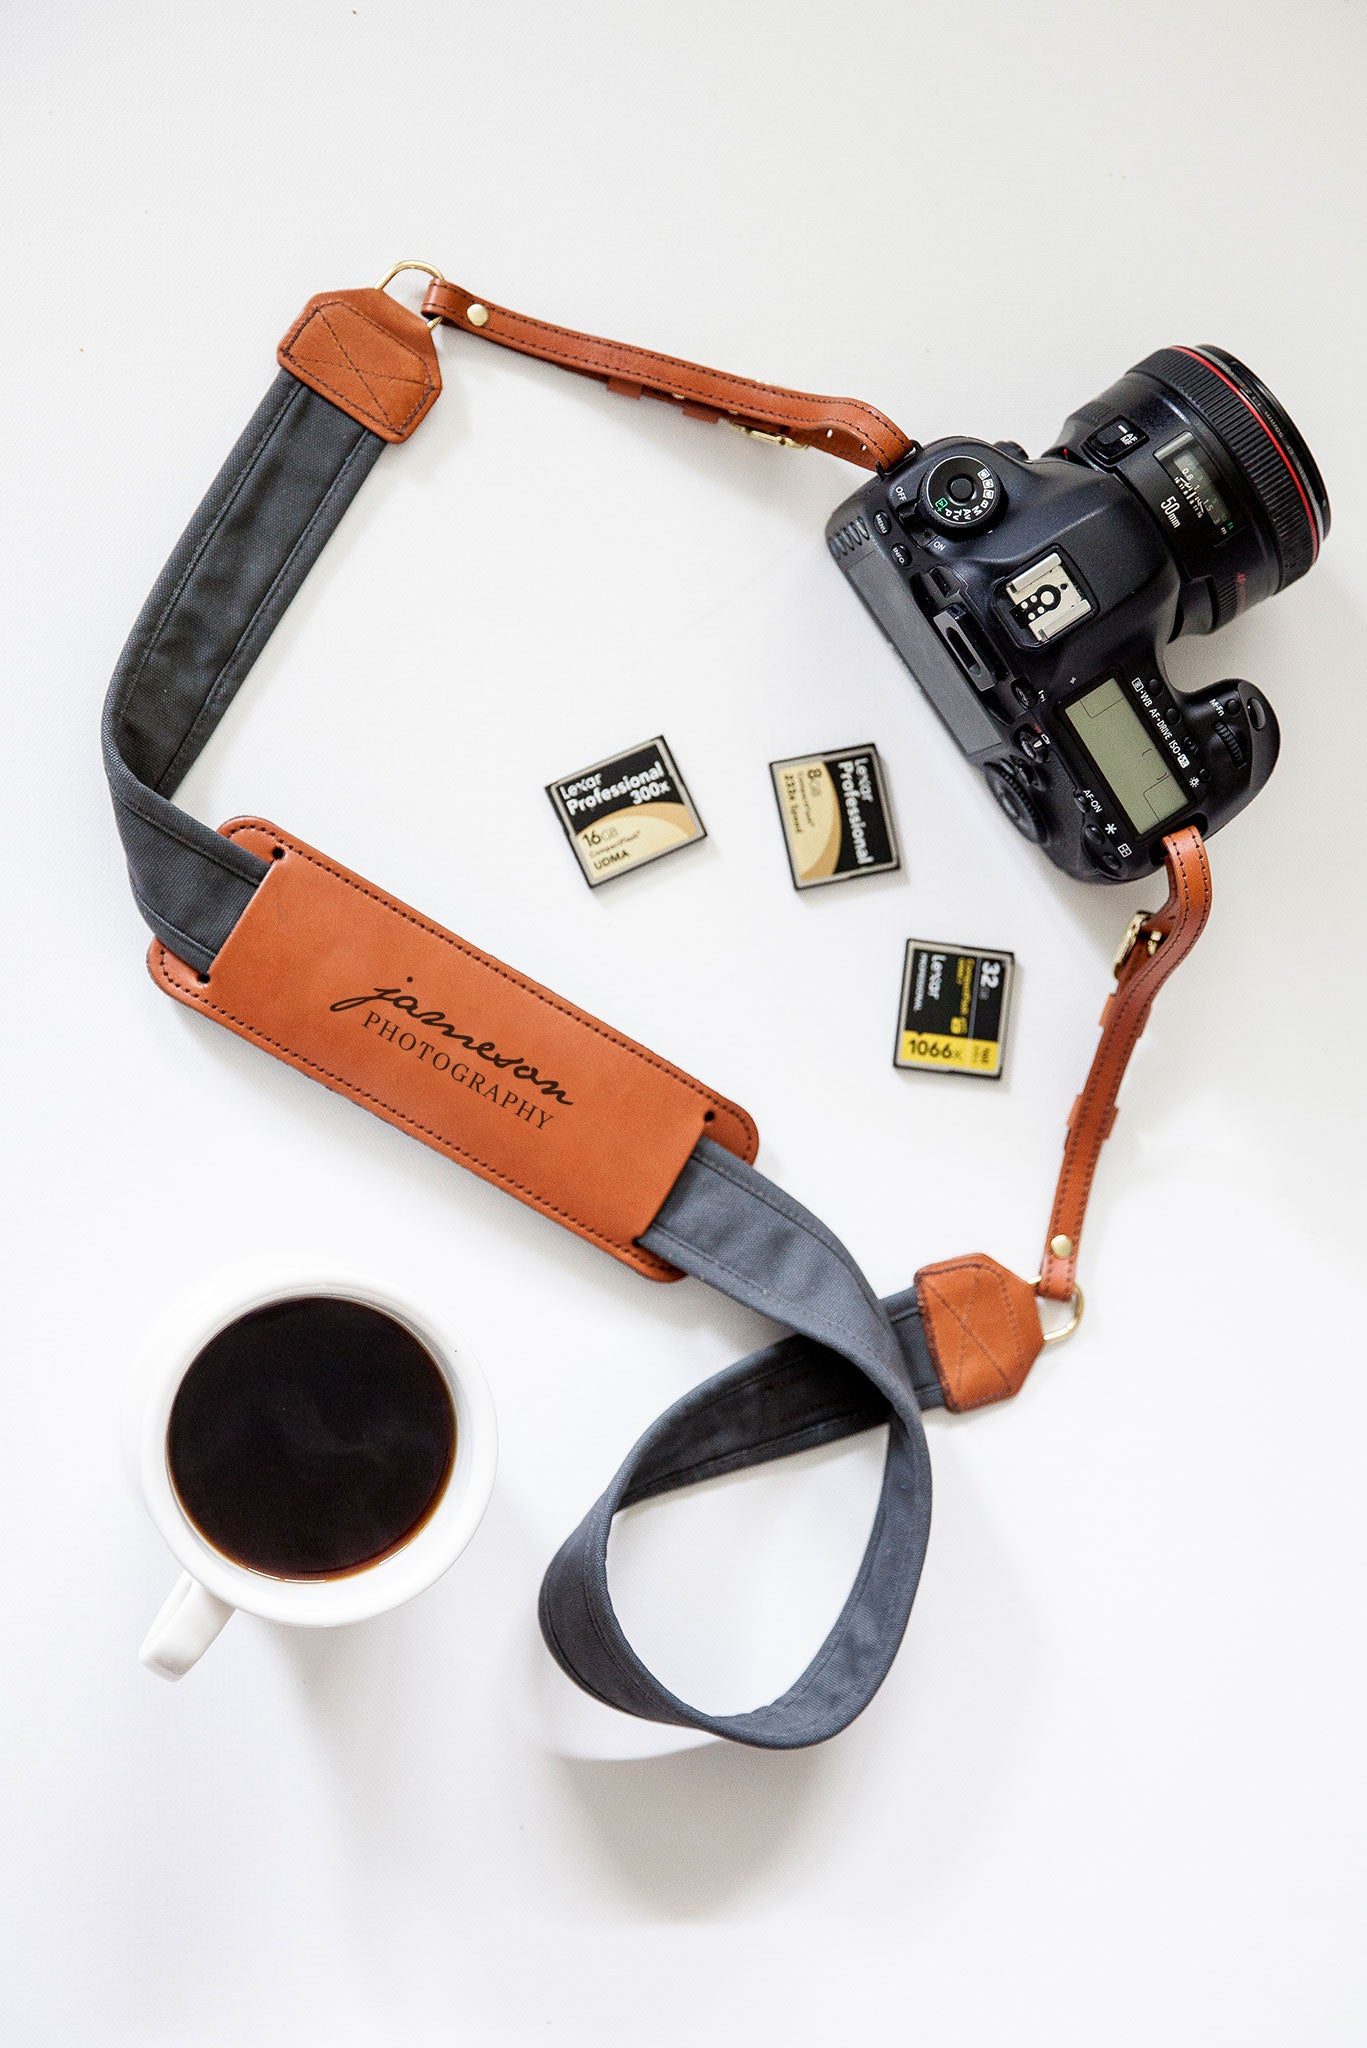 FOTO | Graphite Fotostrap for Him - a charcoal gray canvas and genuine leather camera strap that can be personalized with a monogram or business logo, making it the perfect personalized gift!